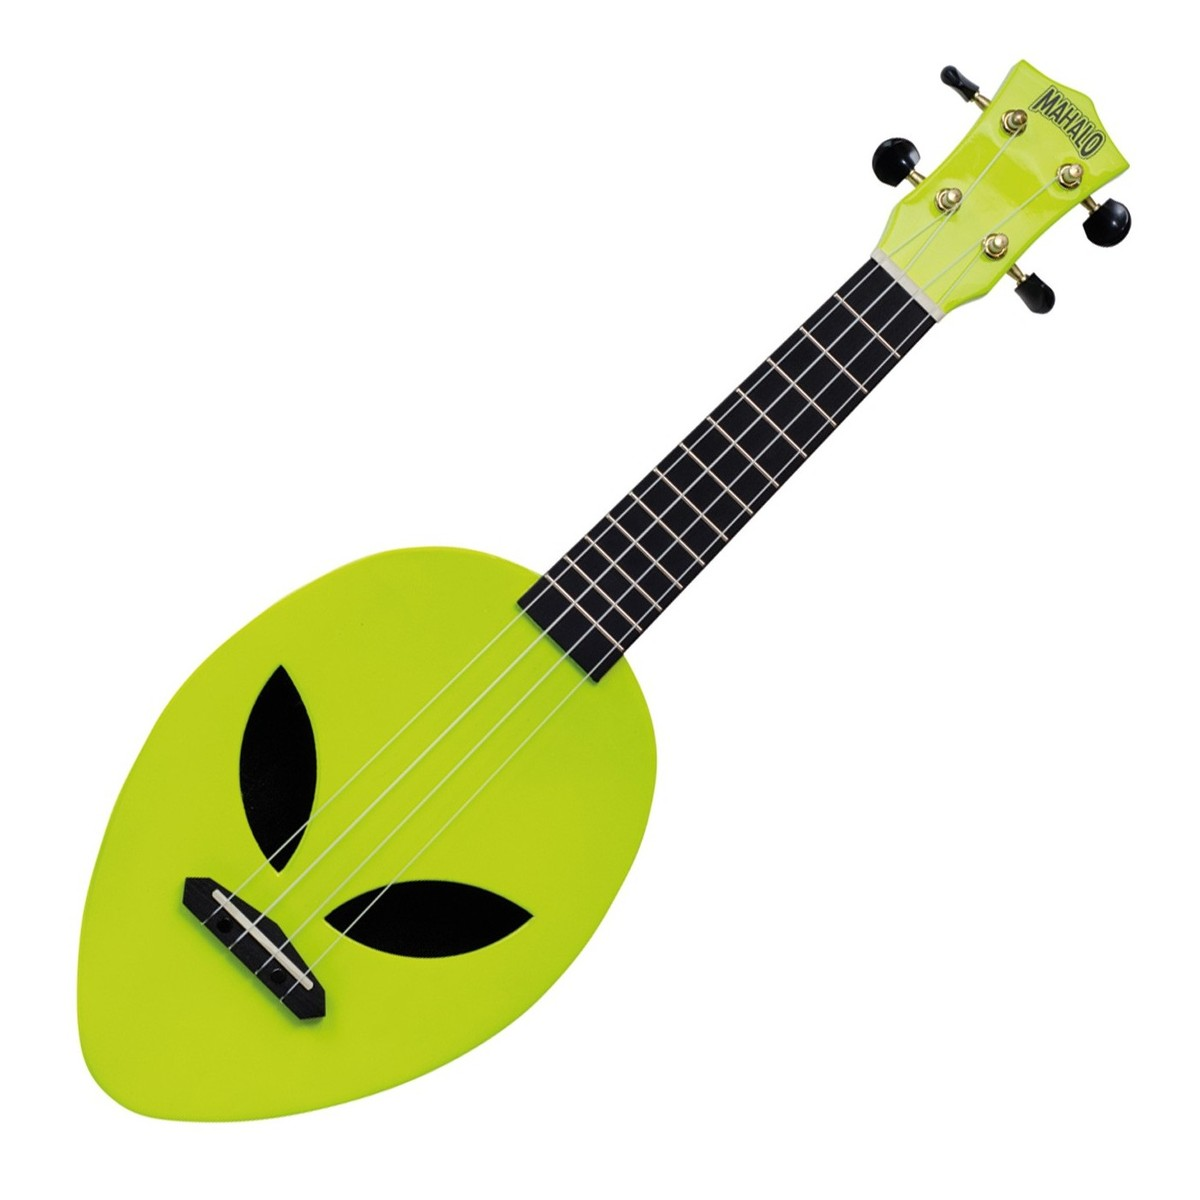 Mahalo Creative Alien Soprano Ukulele Neon Green At